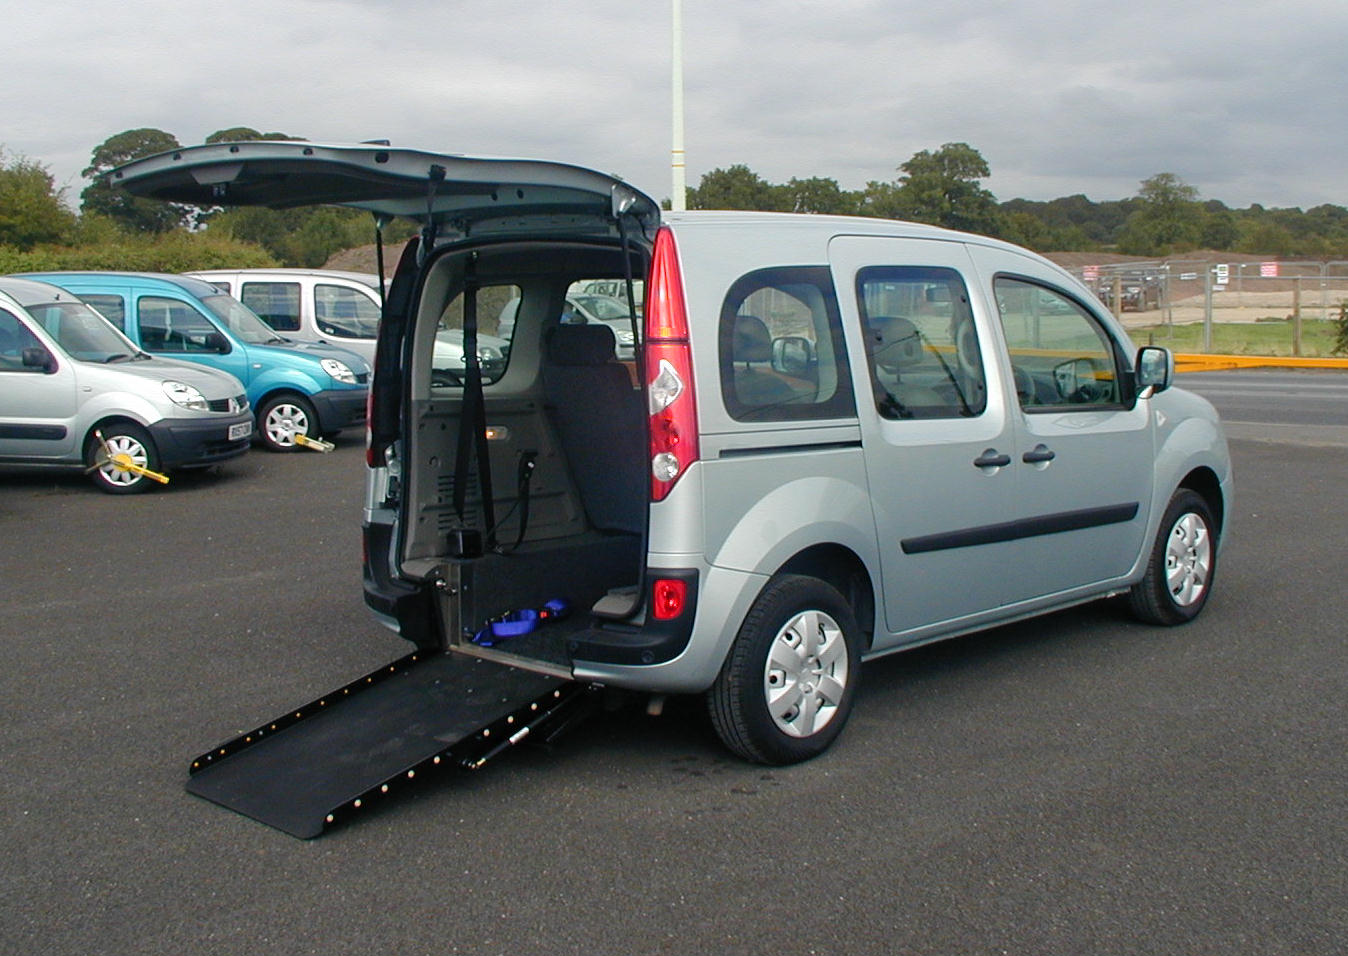 46dd2863ef Wheelchair Accessible Vehicles or WAVs - DisabledGear.com